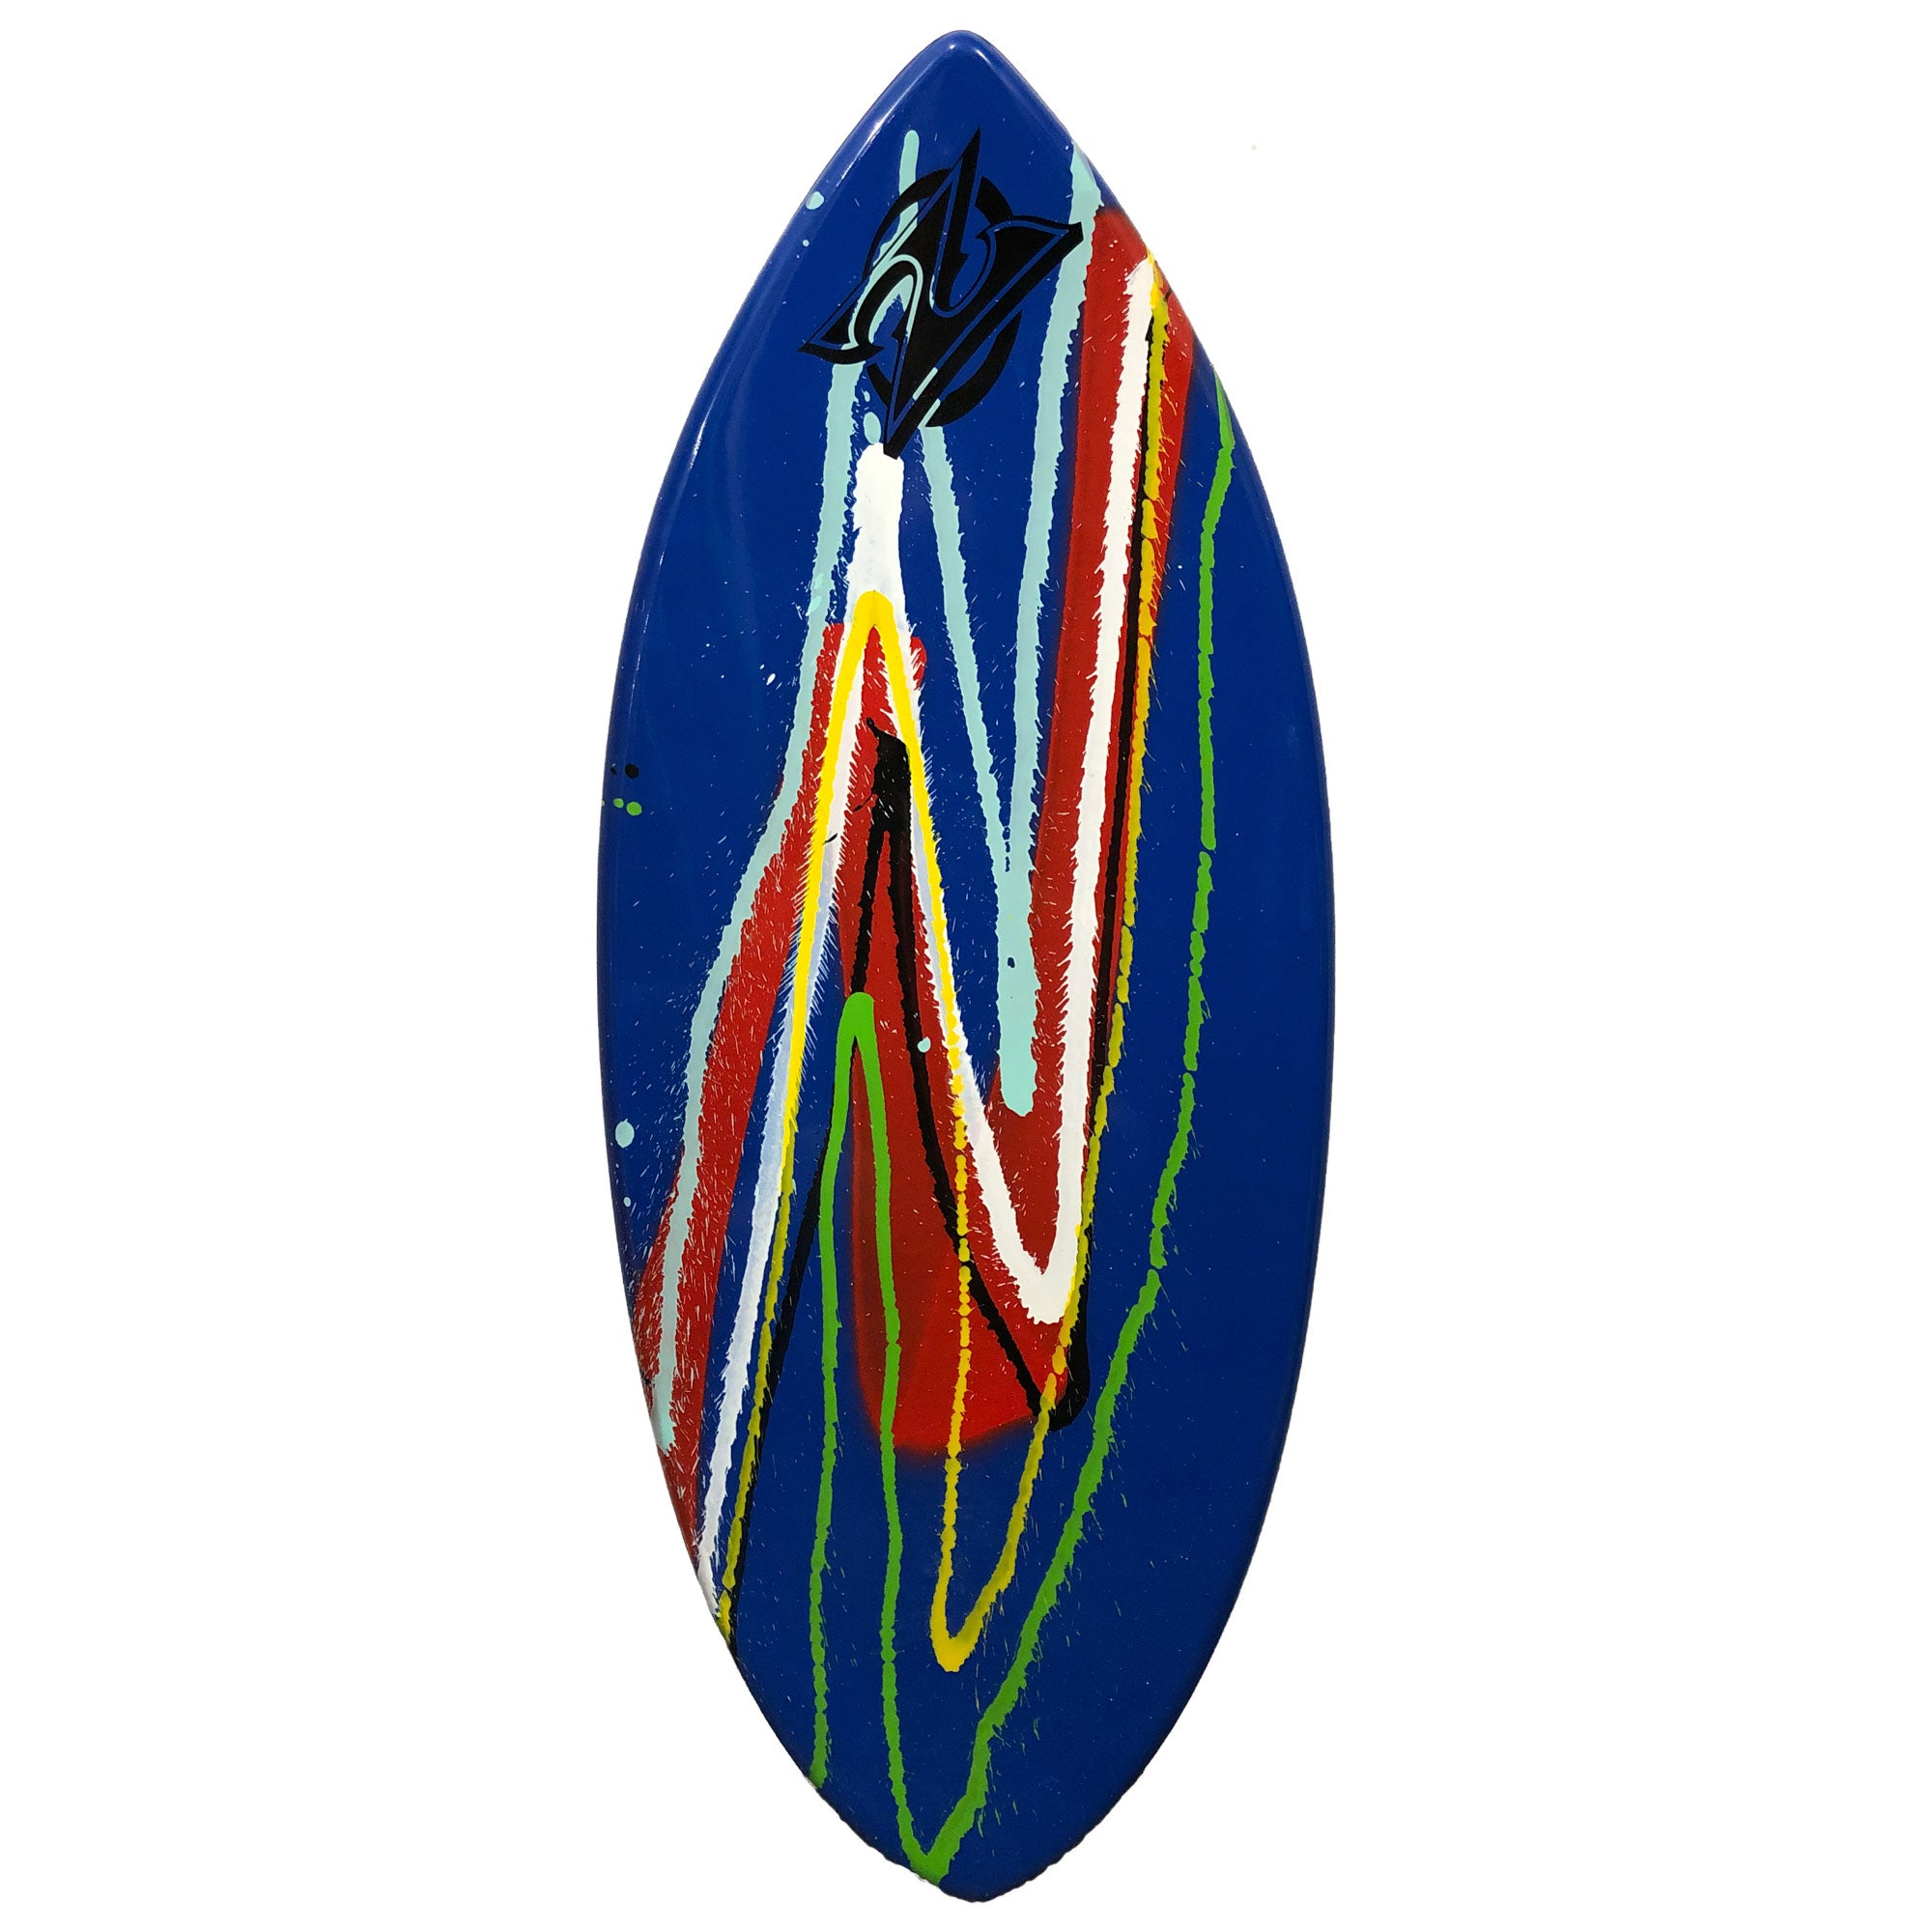 "Zap Wedge 49"" Skimboard - Blue w/ Multi Splatter"